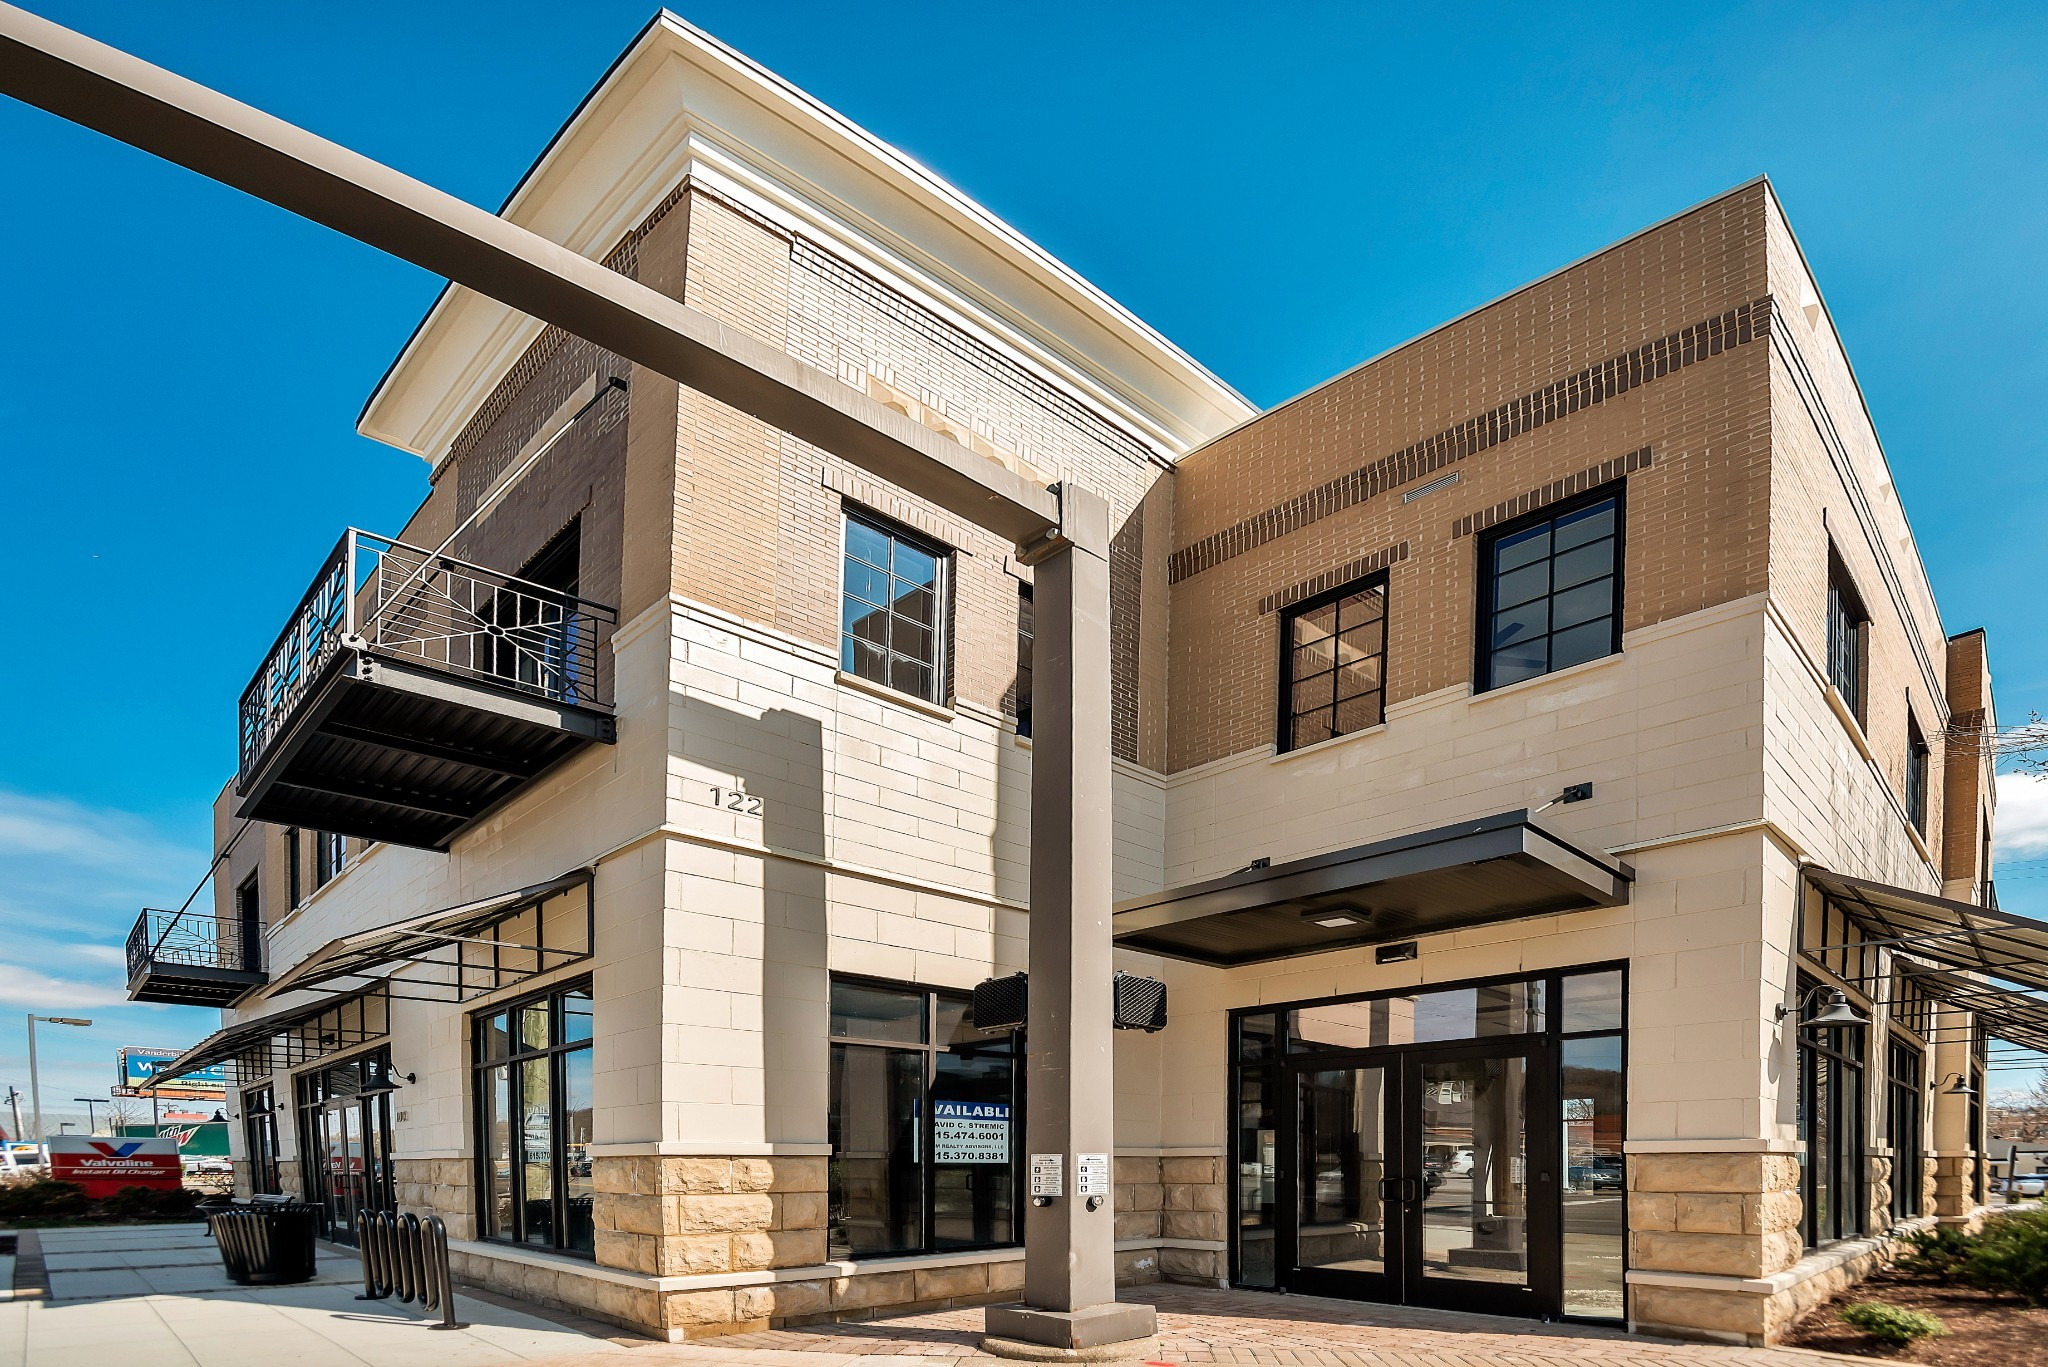 One of a Kind, new condo in downtown Brentwood is filled w/ light. Everything is within walking distance! Large penthouse w/ quartz countertops, induction cooktop & more. Tankless water heater, Pella windows and doors. Shared Elevator. Great Live/Work opportunity! Retail space available for lease.